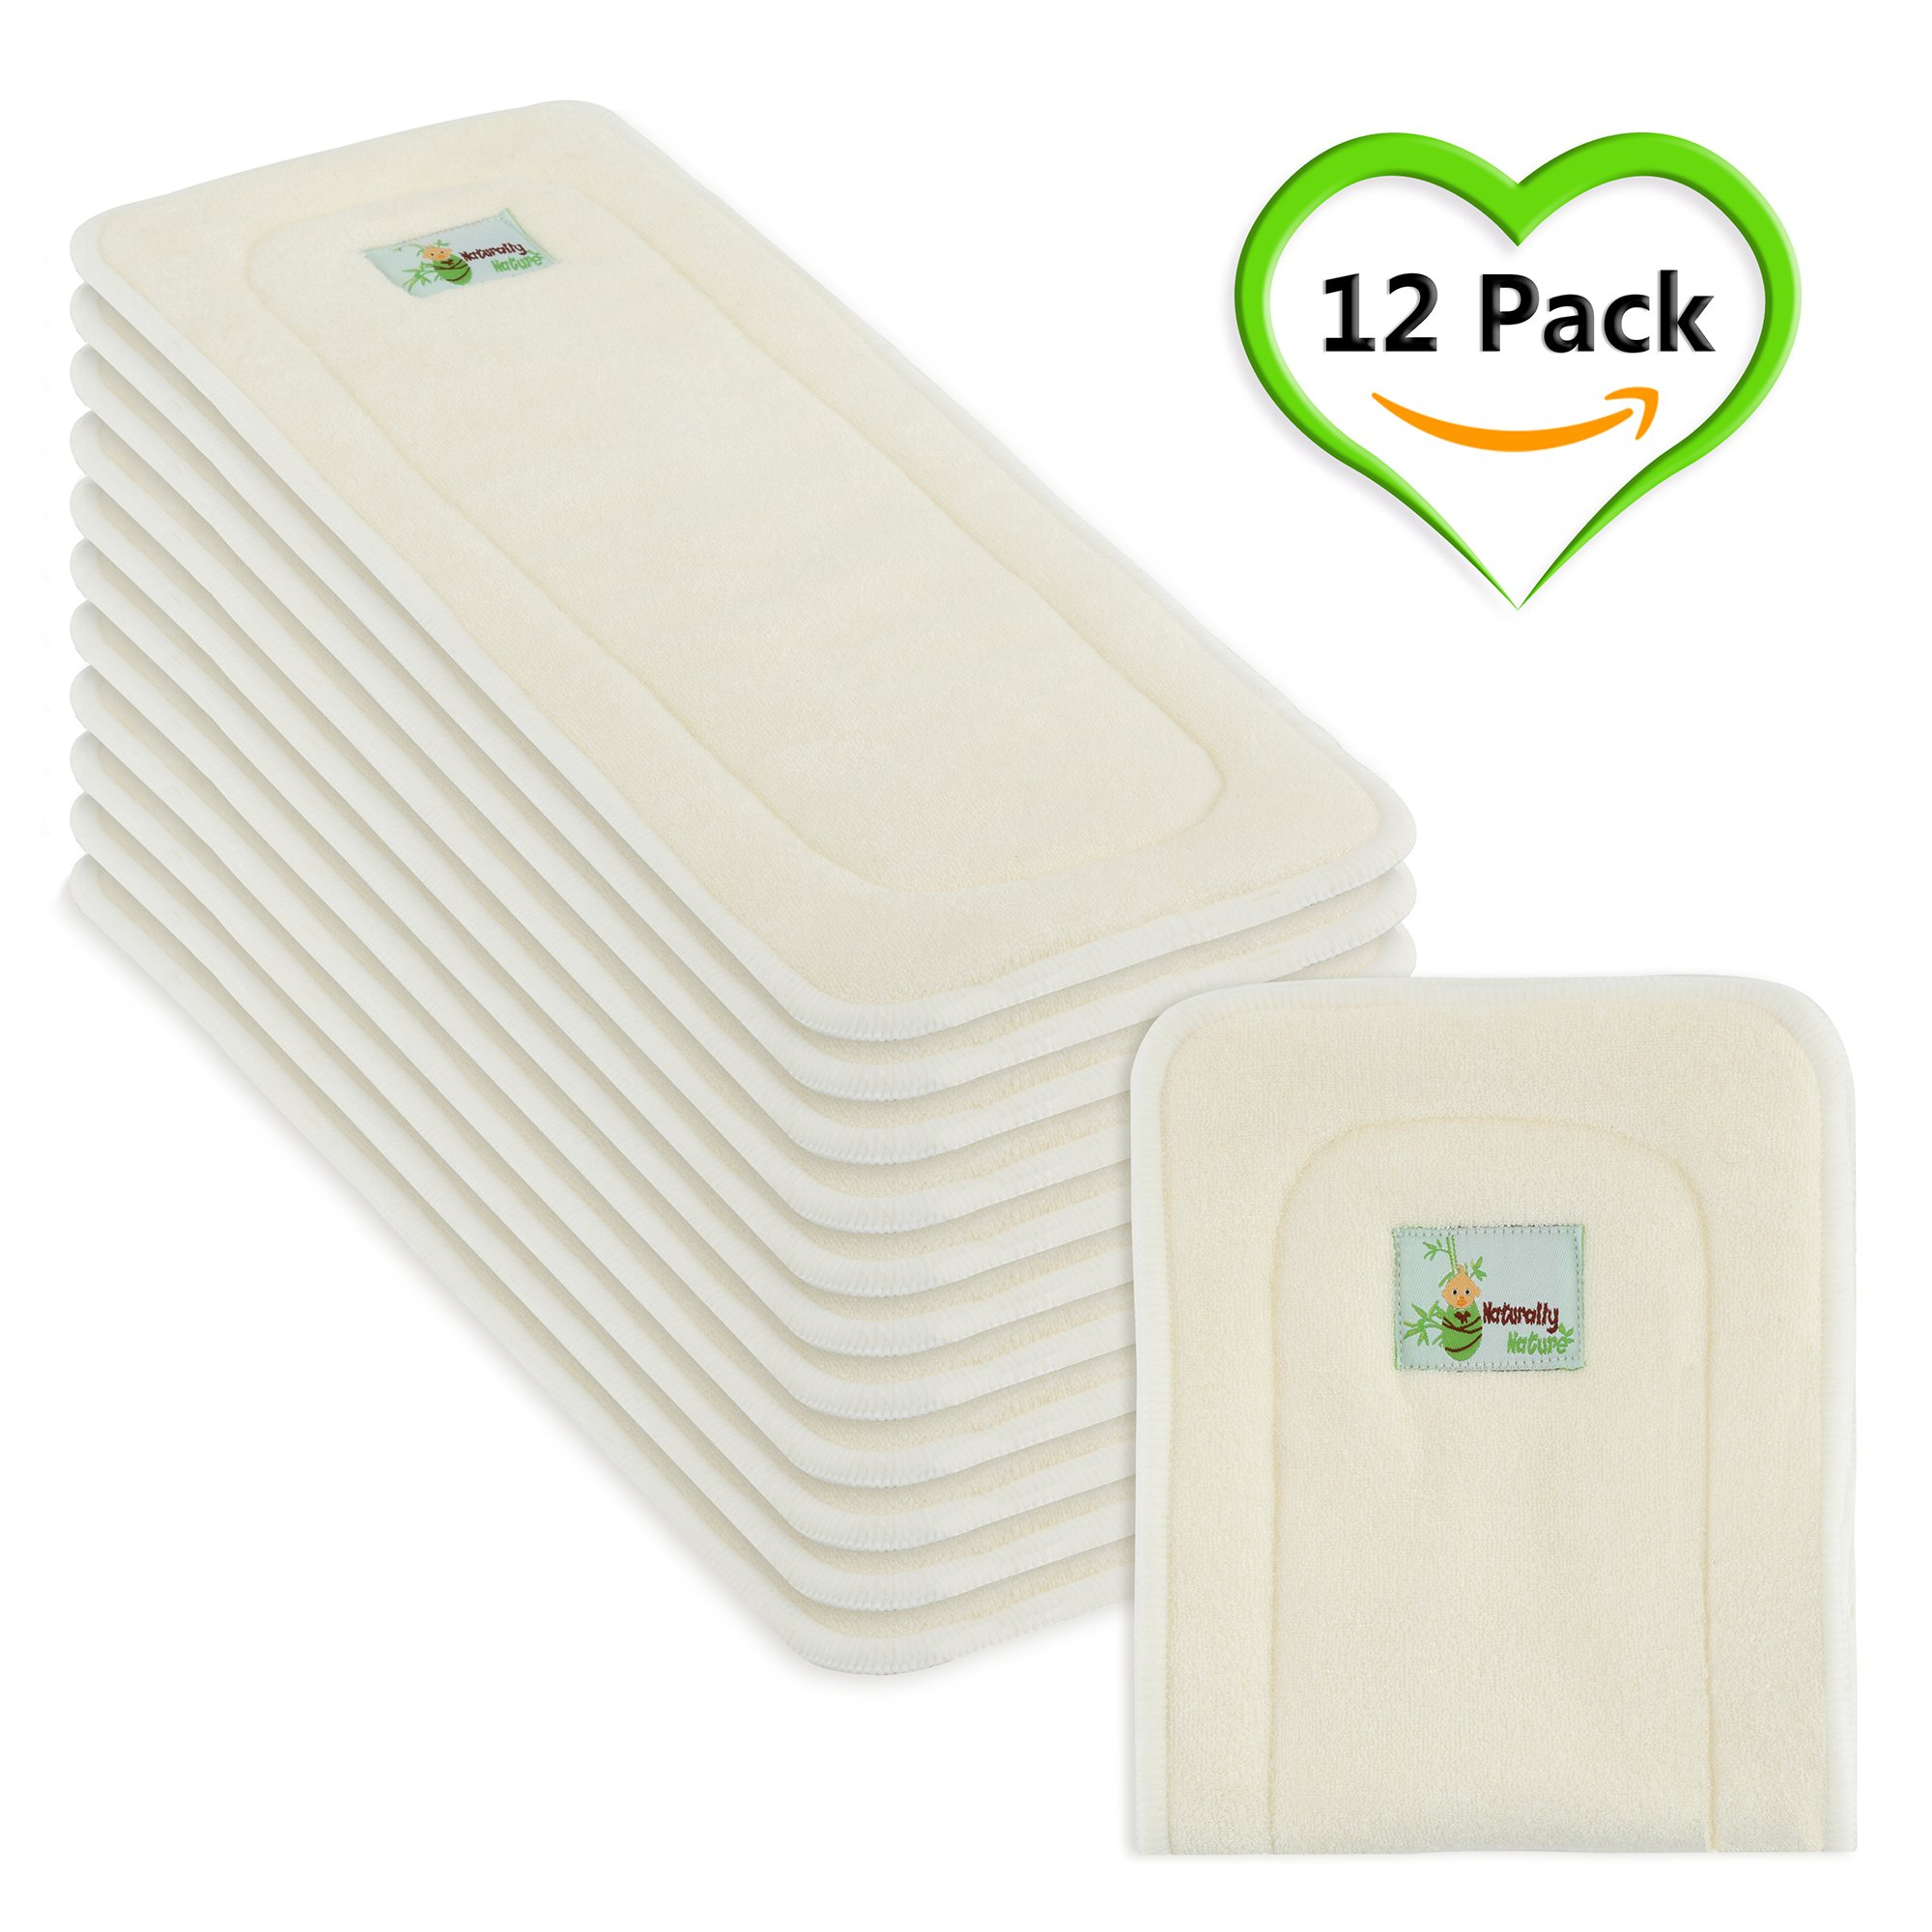 Naturally Natures Cloth Diaper Inserts 5 Layer - insert - Bamboo Reusable Liners (pack of 12) Liner